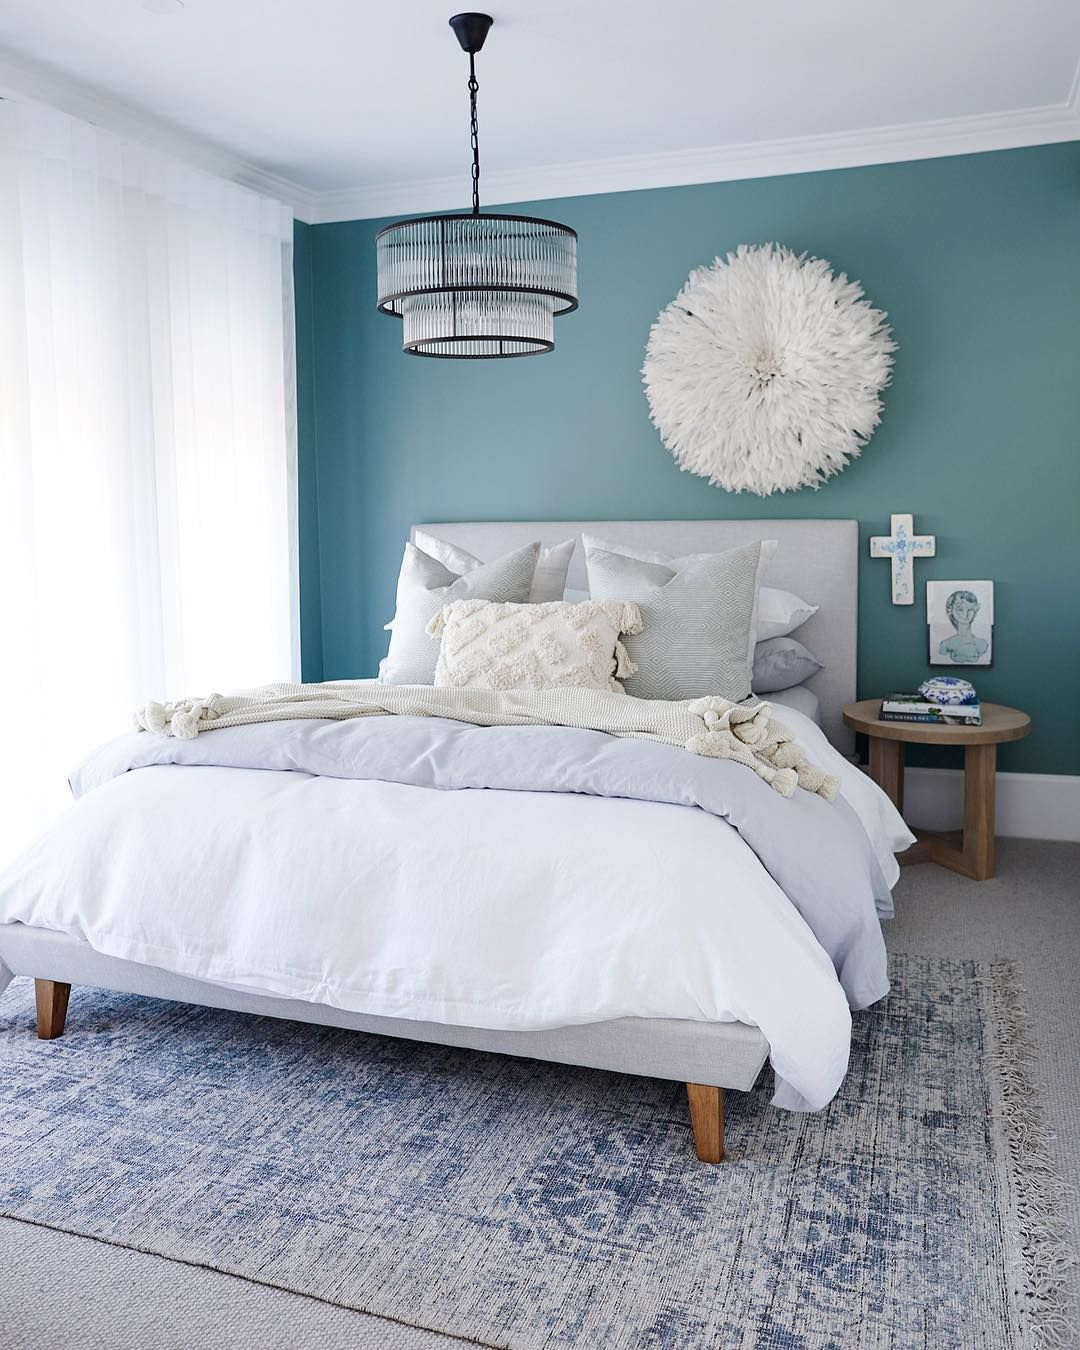 Pretty Beach Bedroom With Teal Walls White Bedding And Pale Grey